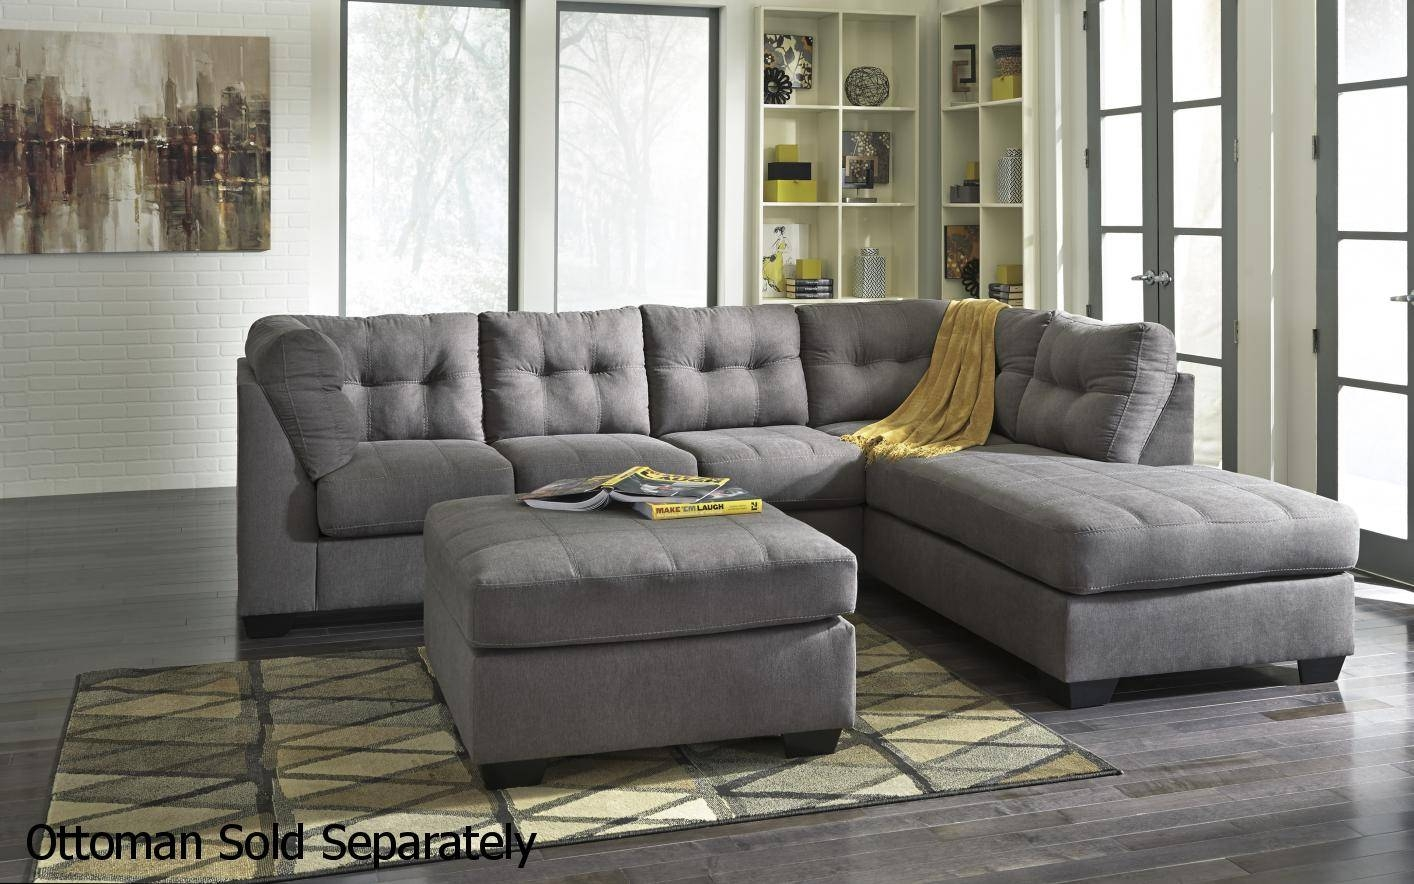 Gray Sectional Sofa Ashley Furniture | Furniture Design Ideas For Sectional Sofas Ashley Furniture (View 9 of 15)